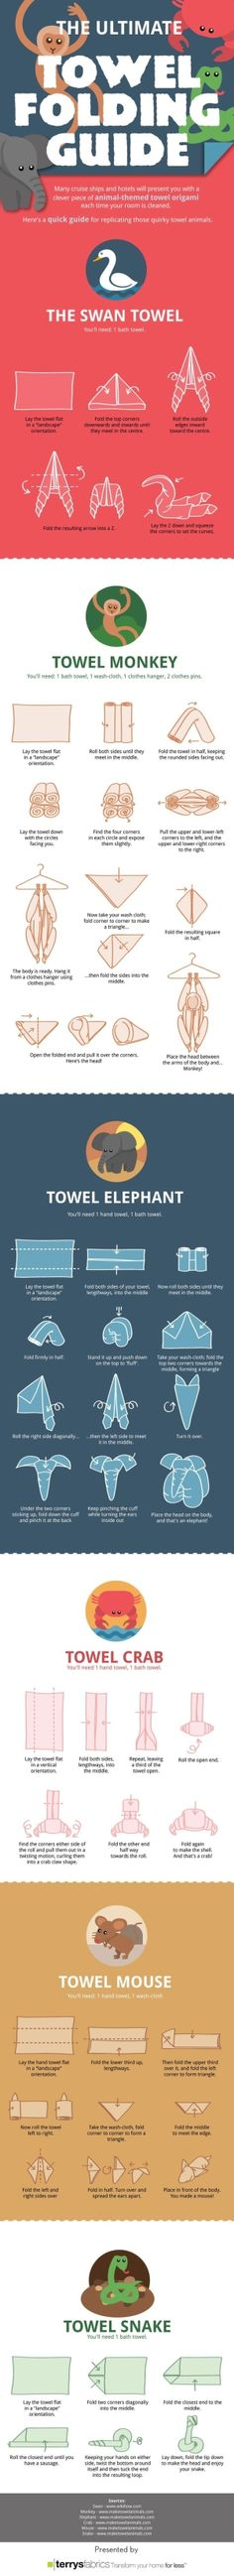 The Ultimate Towel Folding Guide Make laundry folding fun!